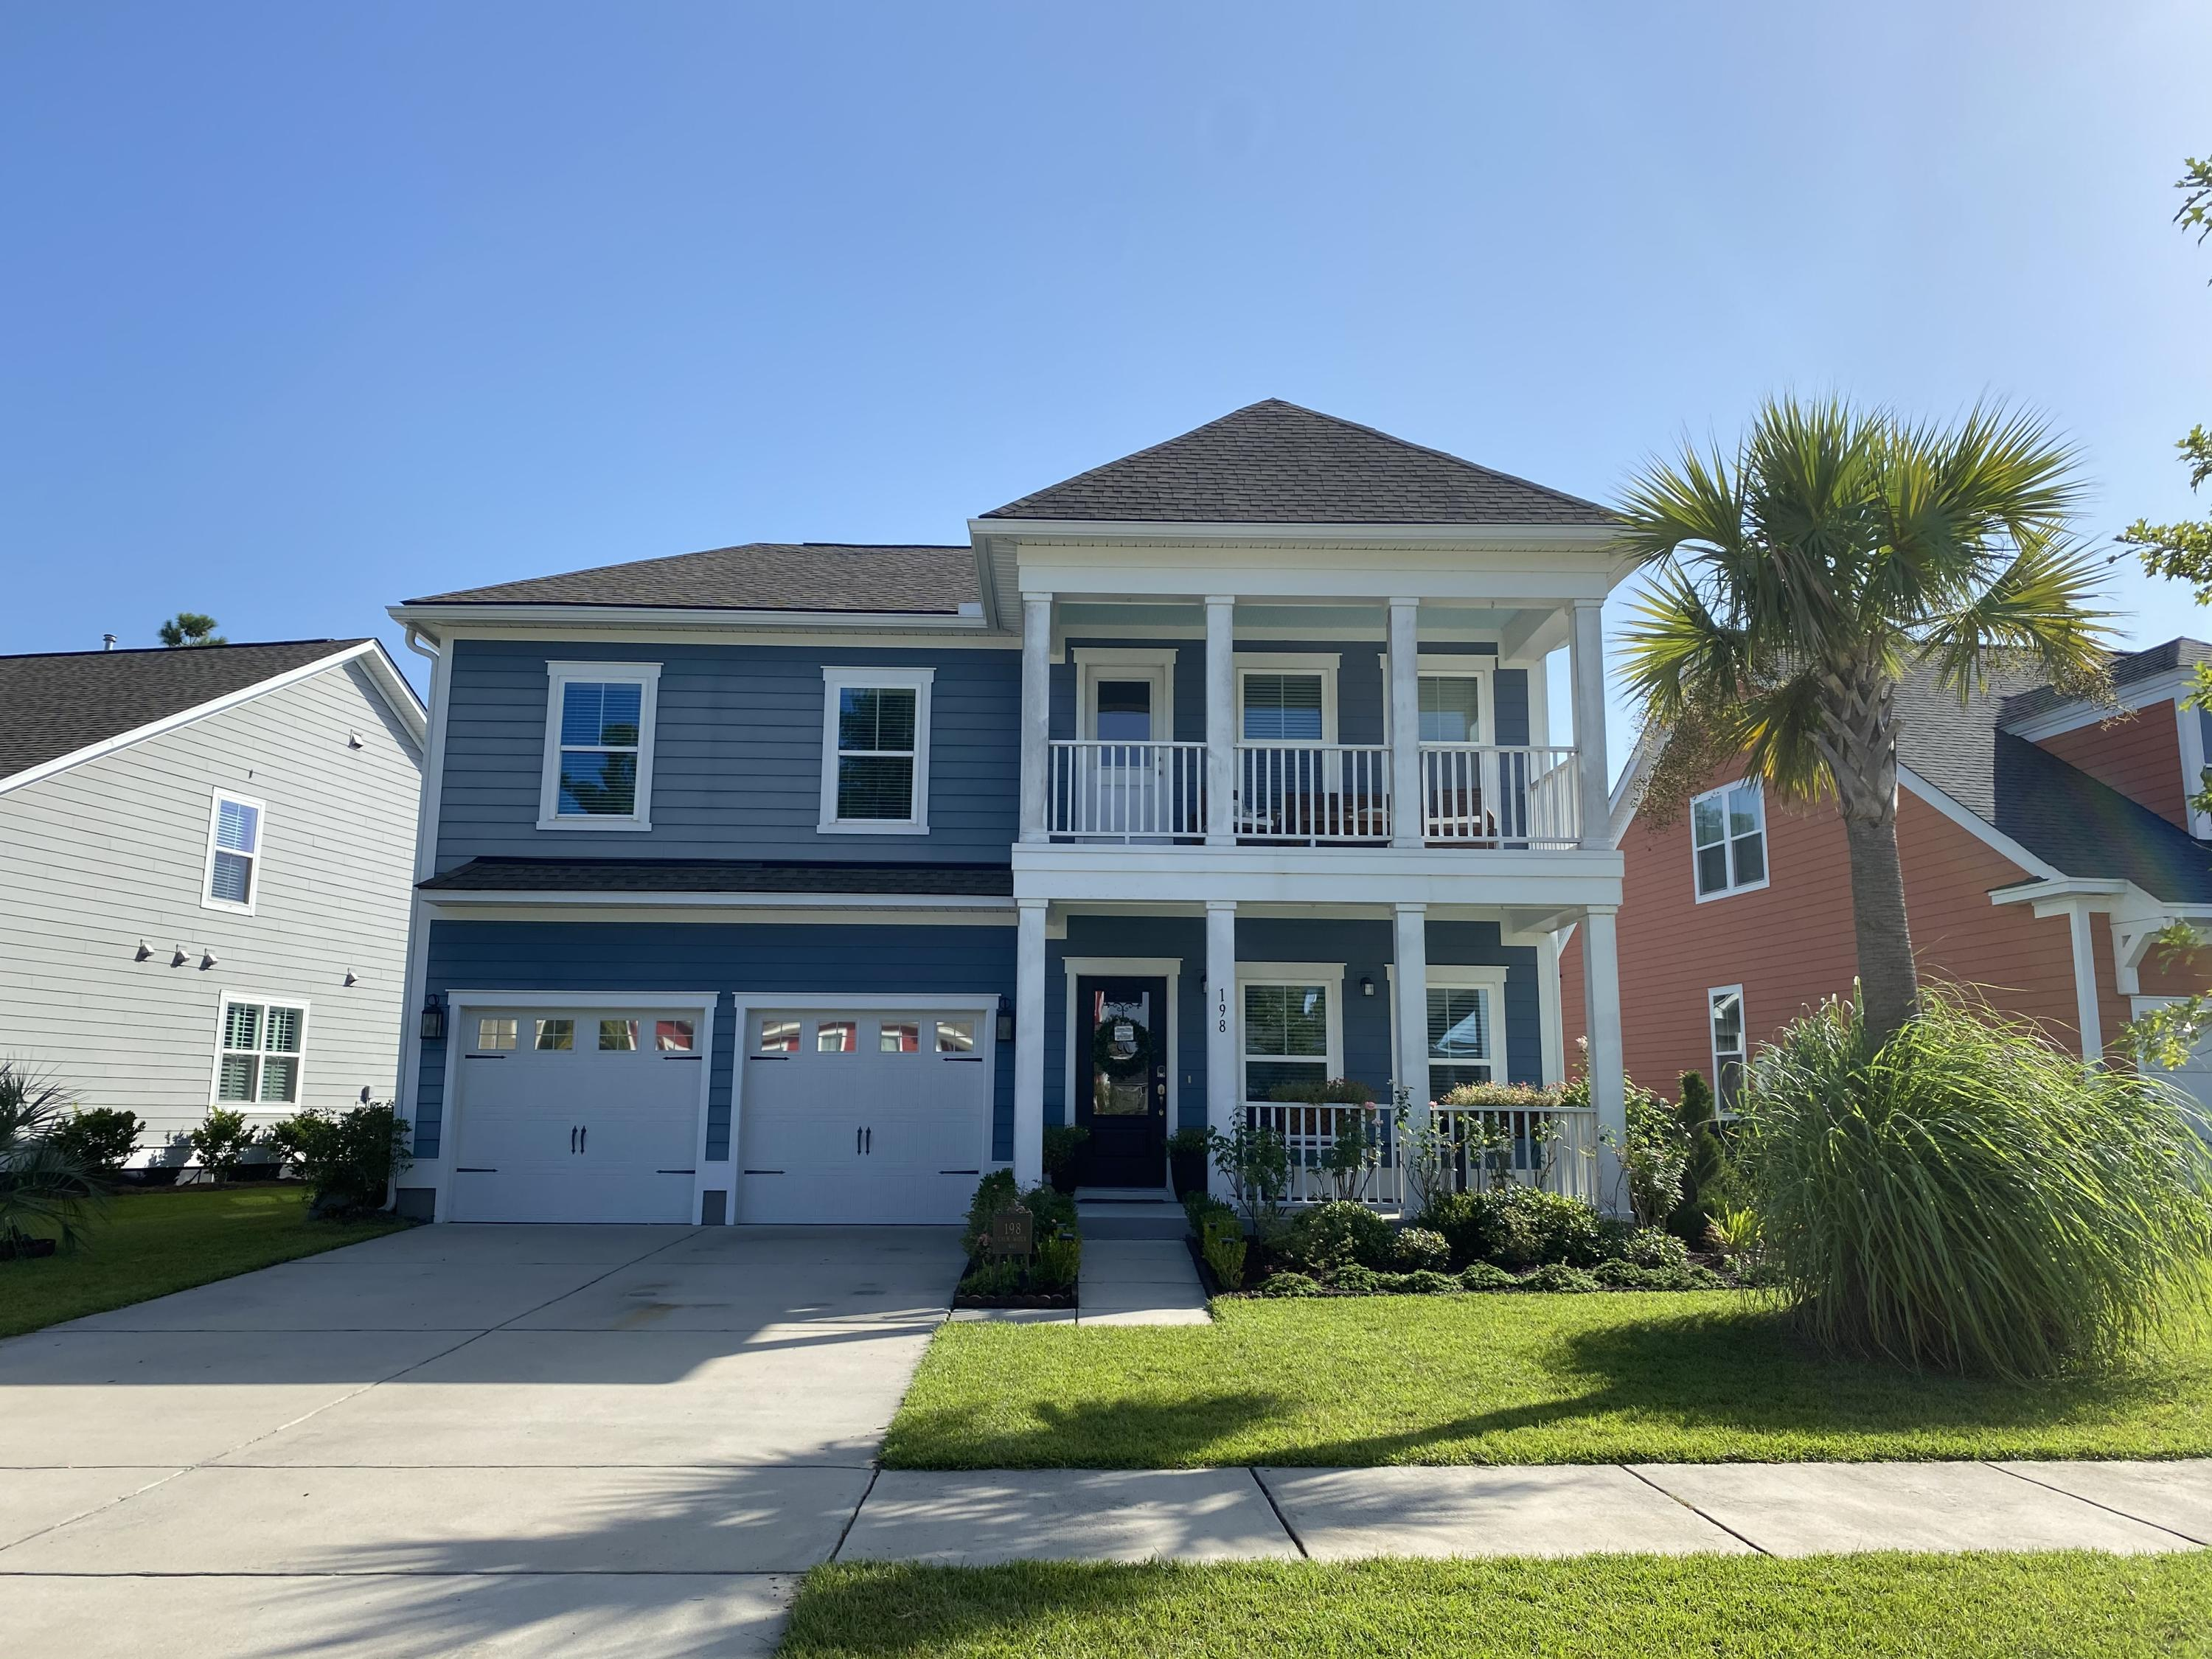 198 Calm Water Way Summerville, Sc 29486